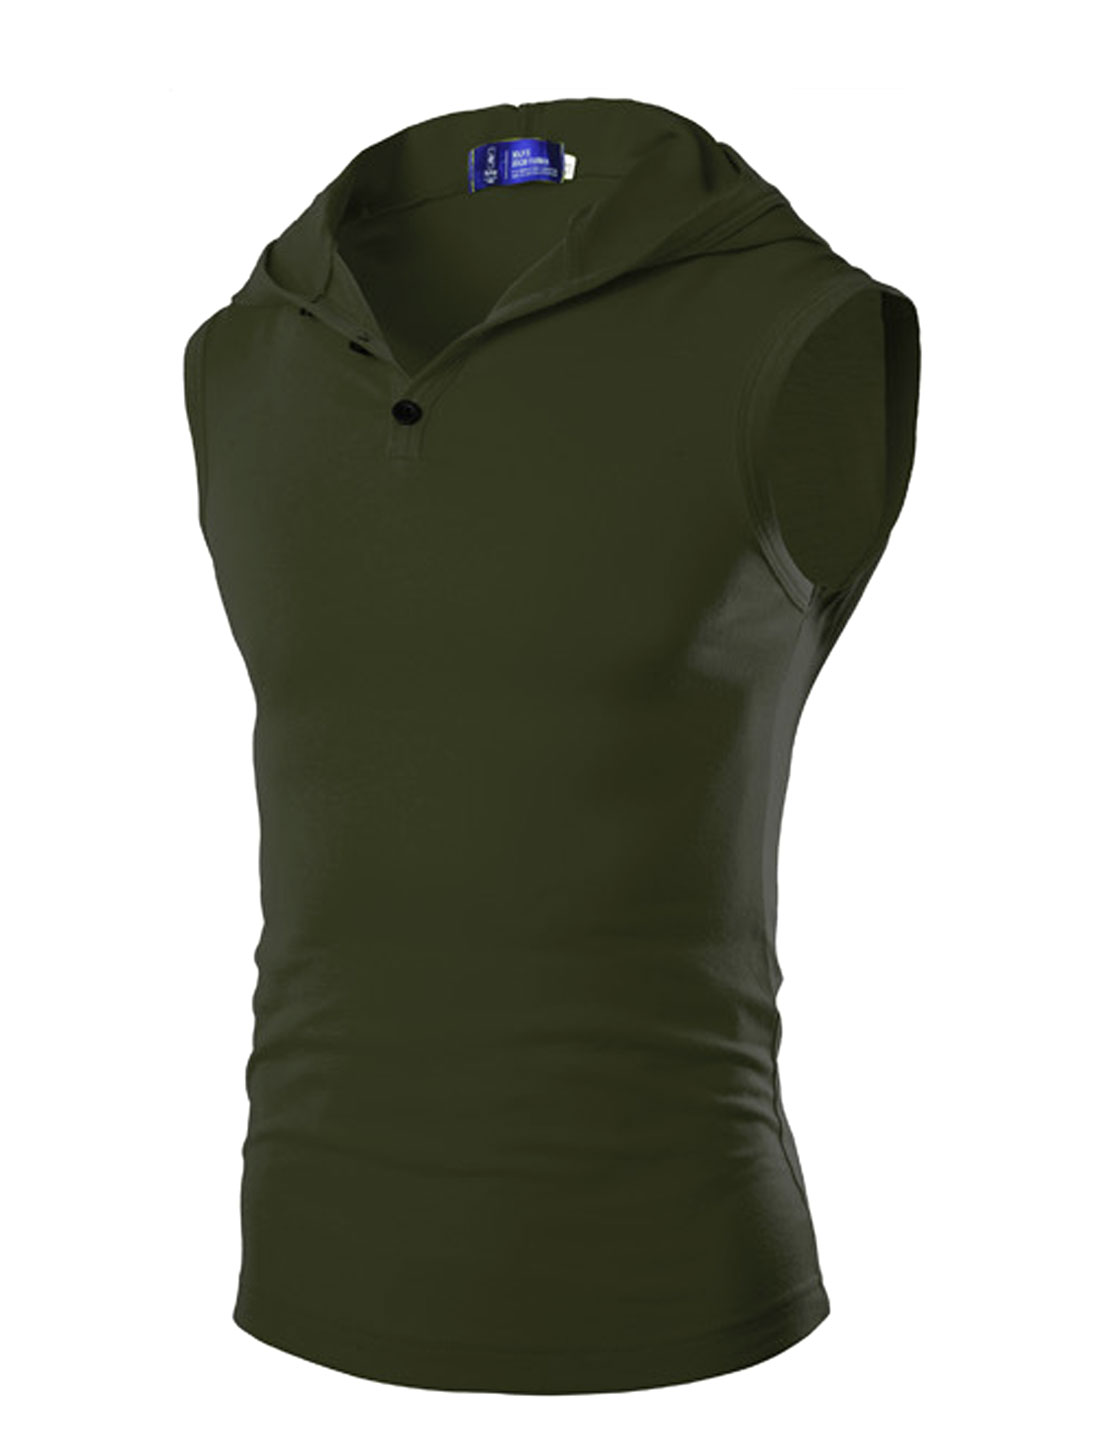 Men Hooded Sleeveless Casual Tops Army Green S